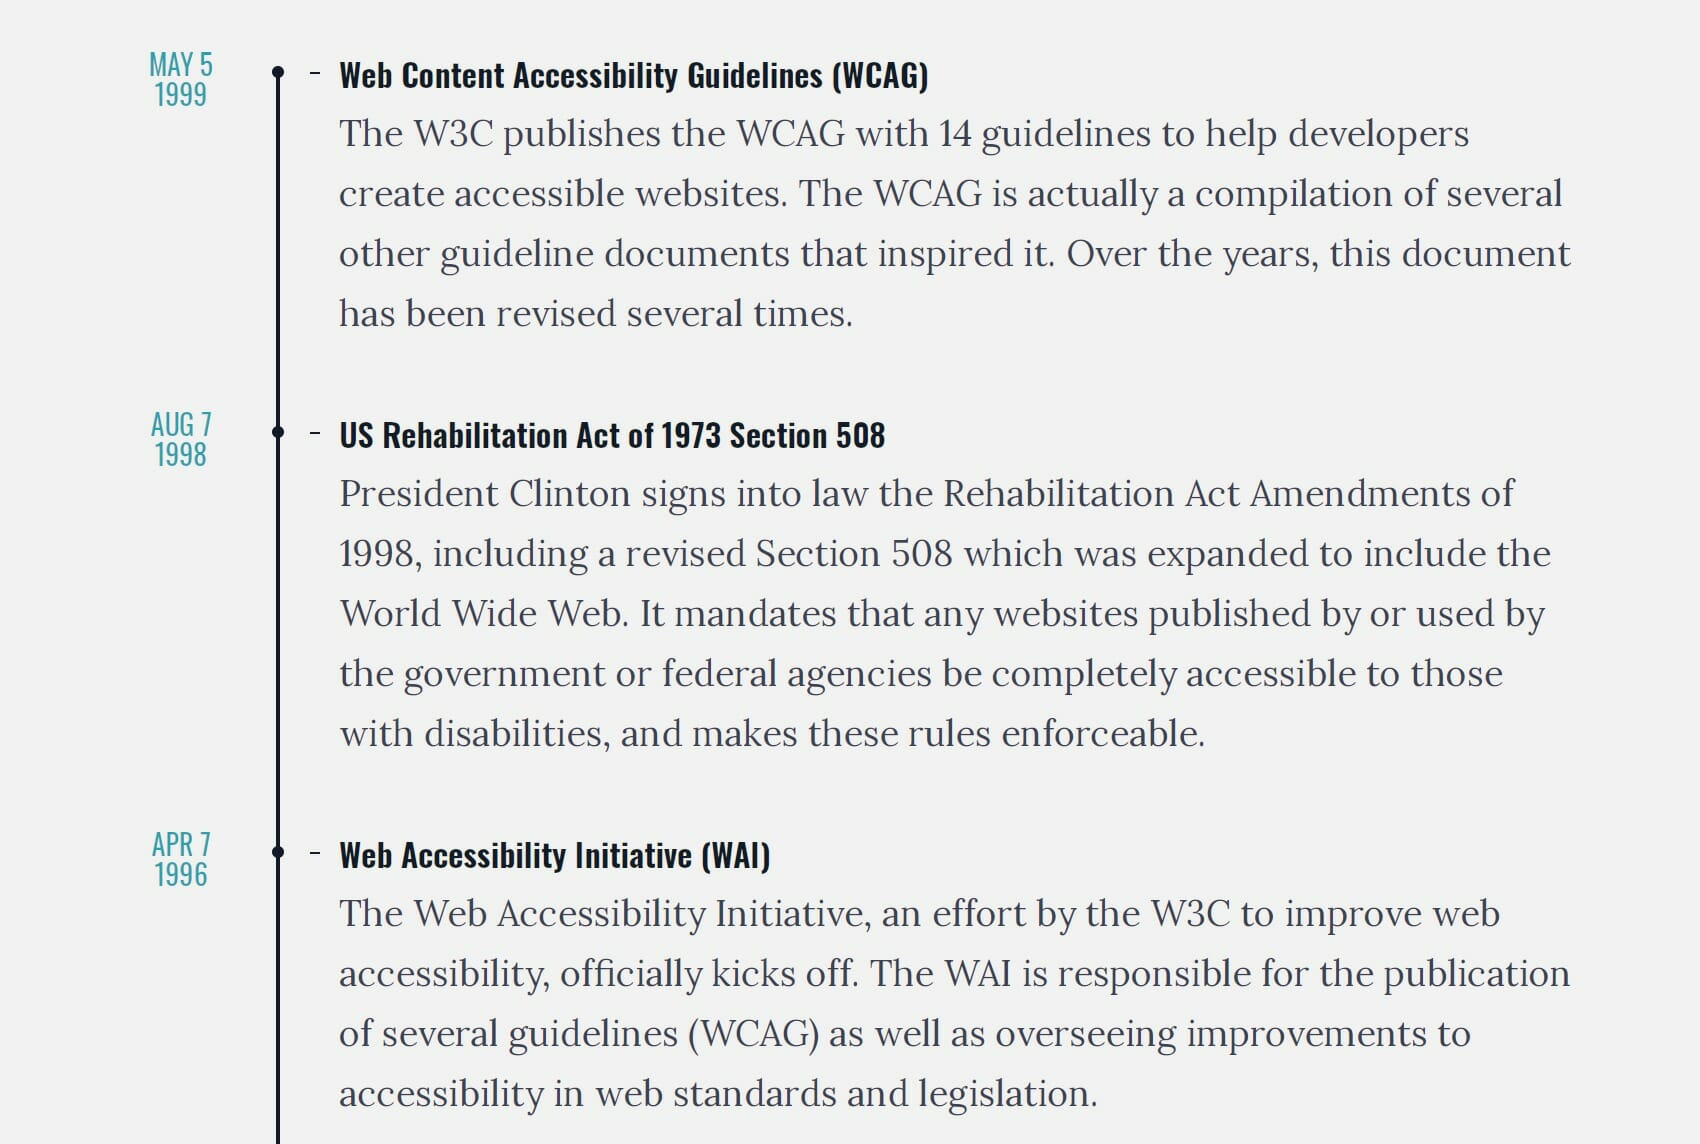 1996: Web Accessibility Initiative kicks off, 1998: US Rehabilitation Act of 1973 Section 508 becomes law, 1999: W3C publishes Web Content Accessibility Guidelines